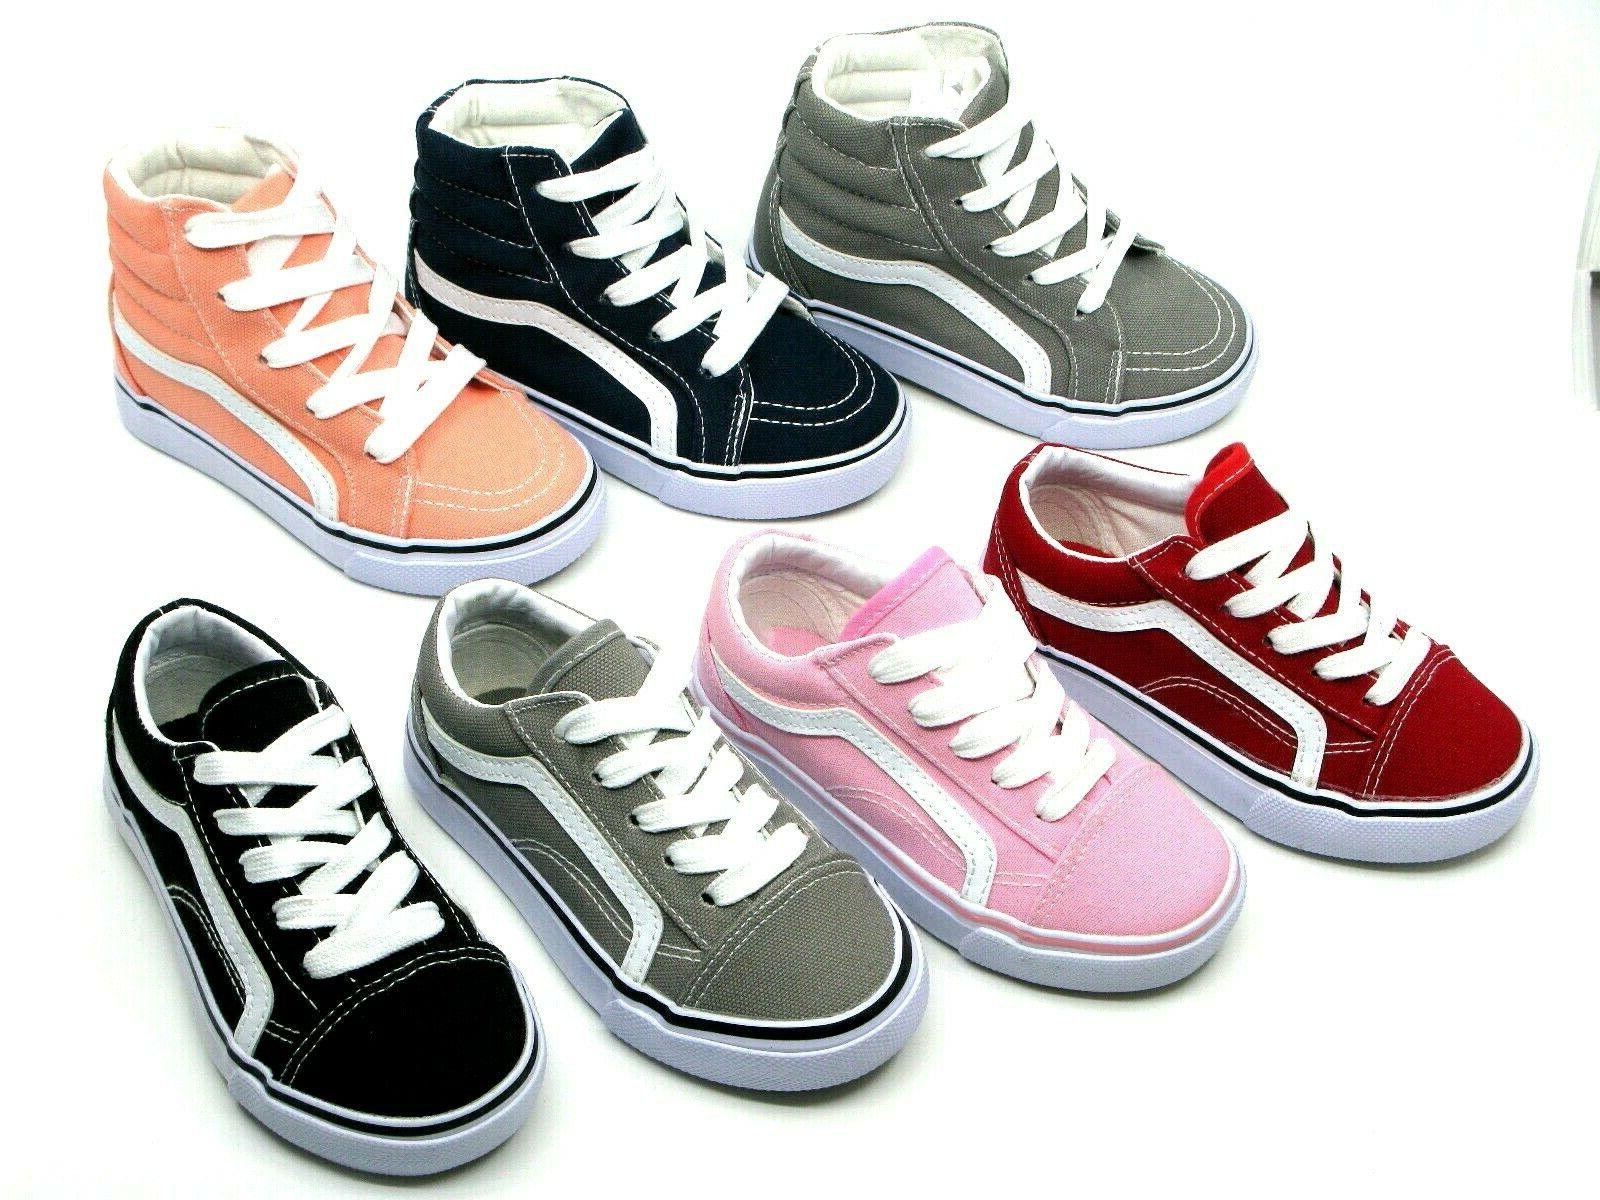 New Lace Up Low Top And Top Baby Toddler Girl Canvas Shoes 5-11